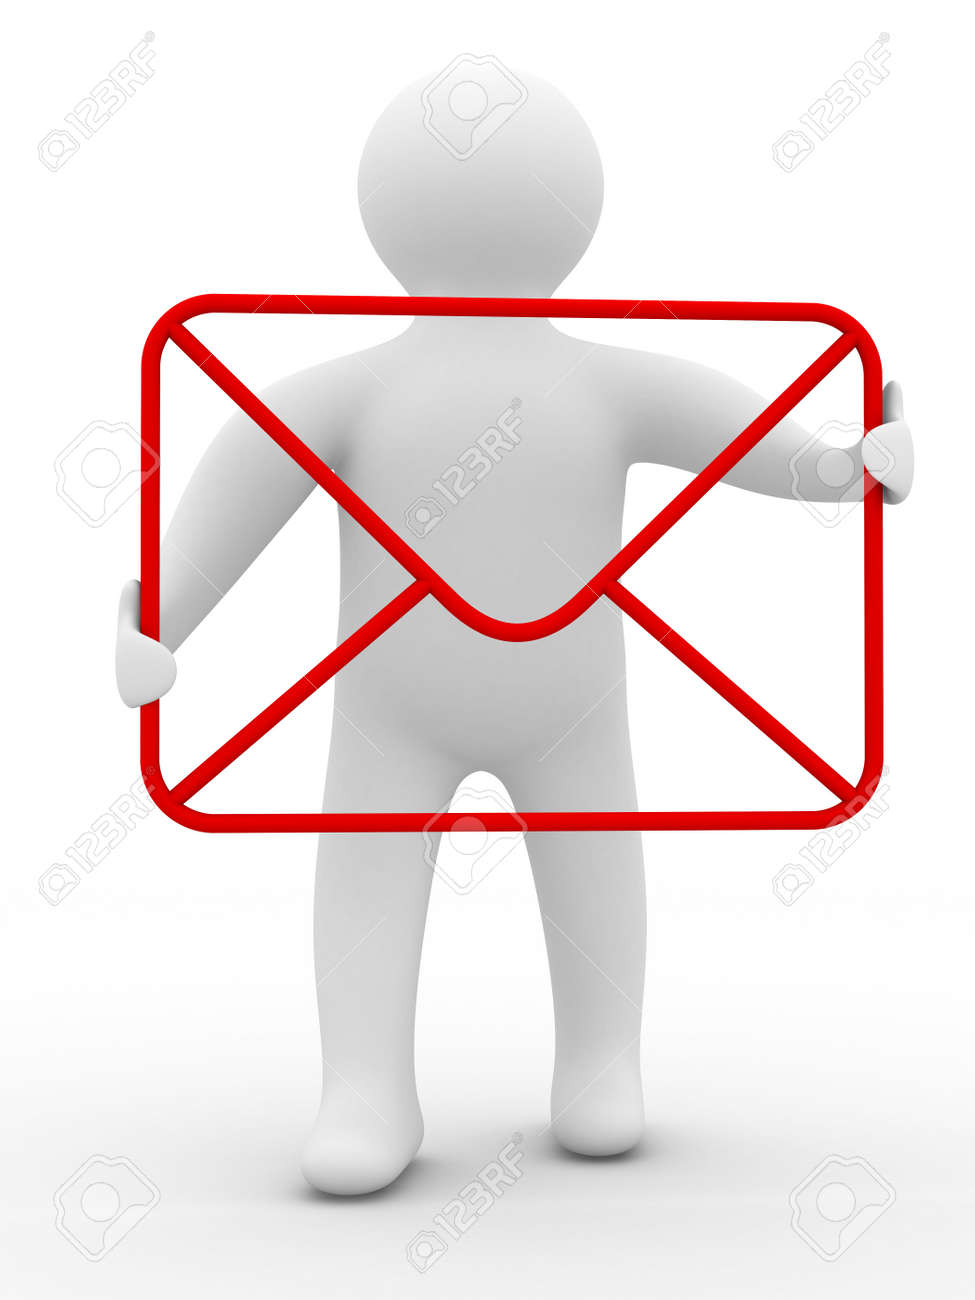 E-mail concept on white background. Isolated 3D image Stock Photo - 5571696